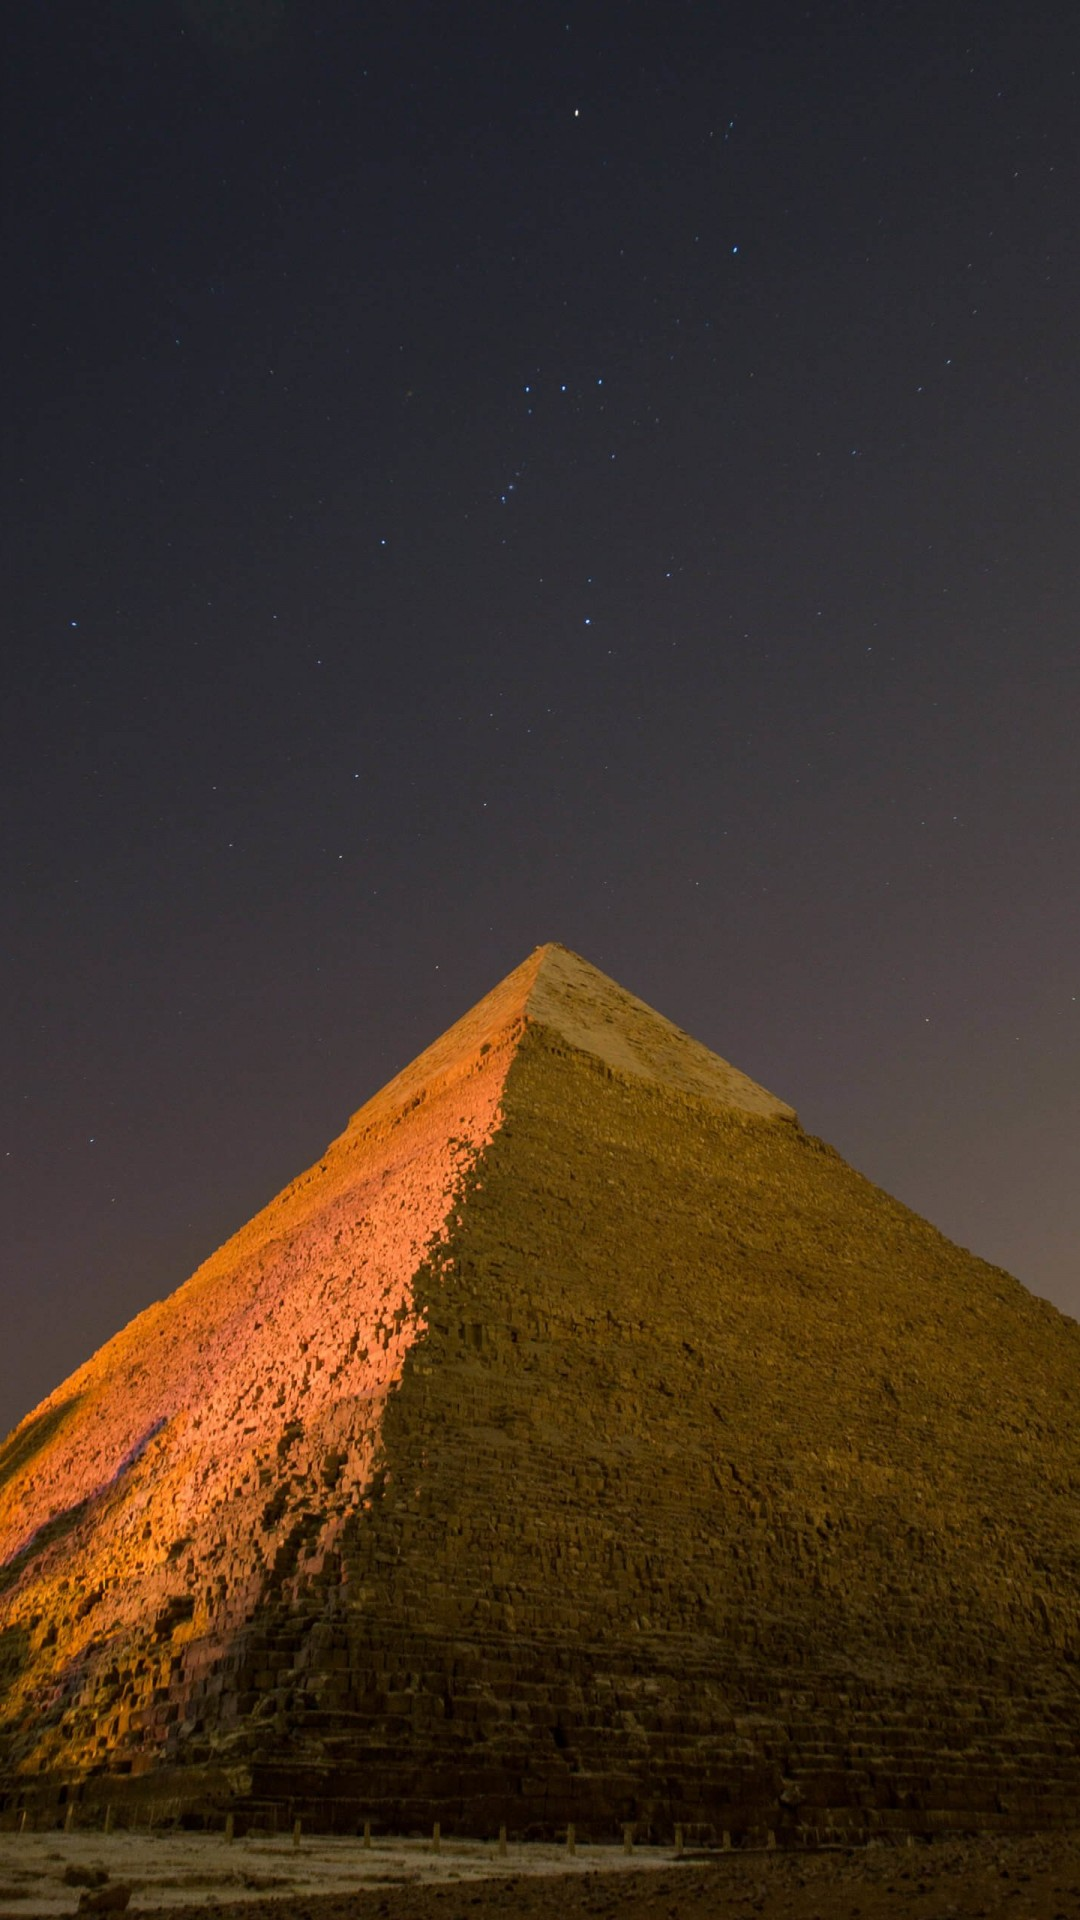 Pyramid by Night Wallpaper for SONY Xperia Z2